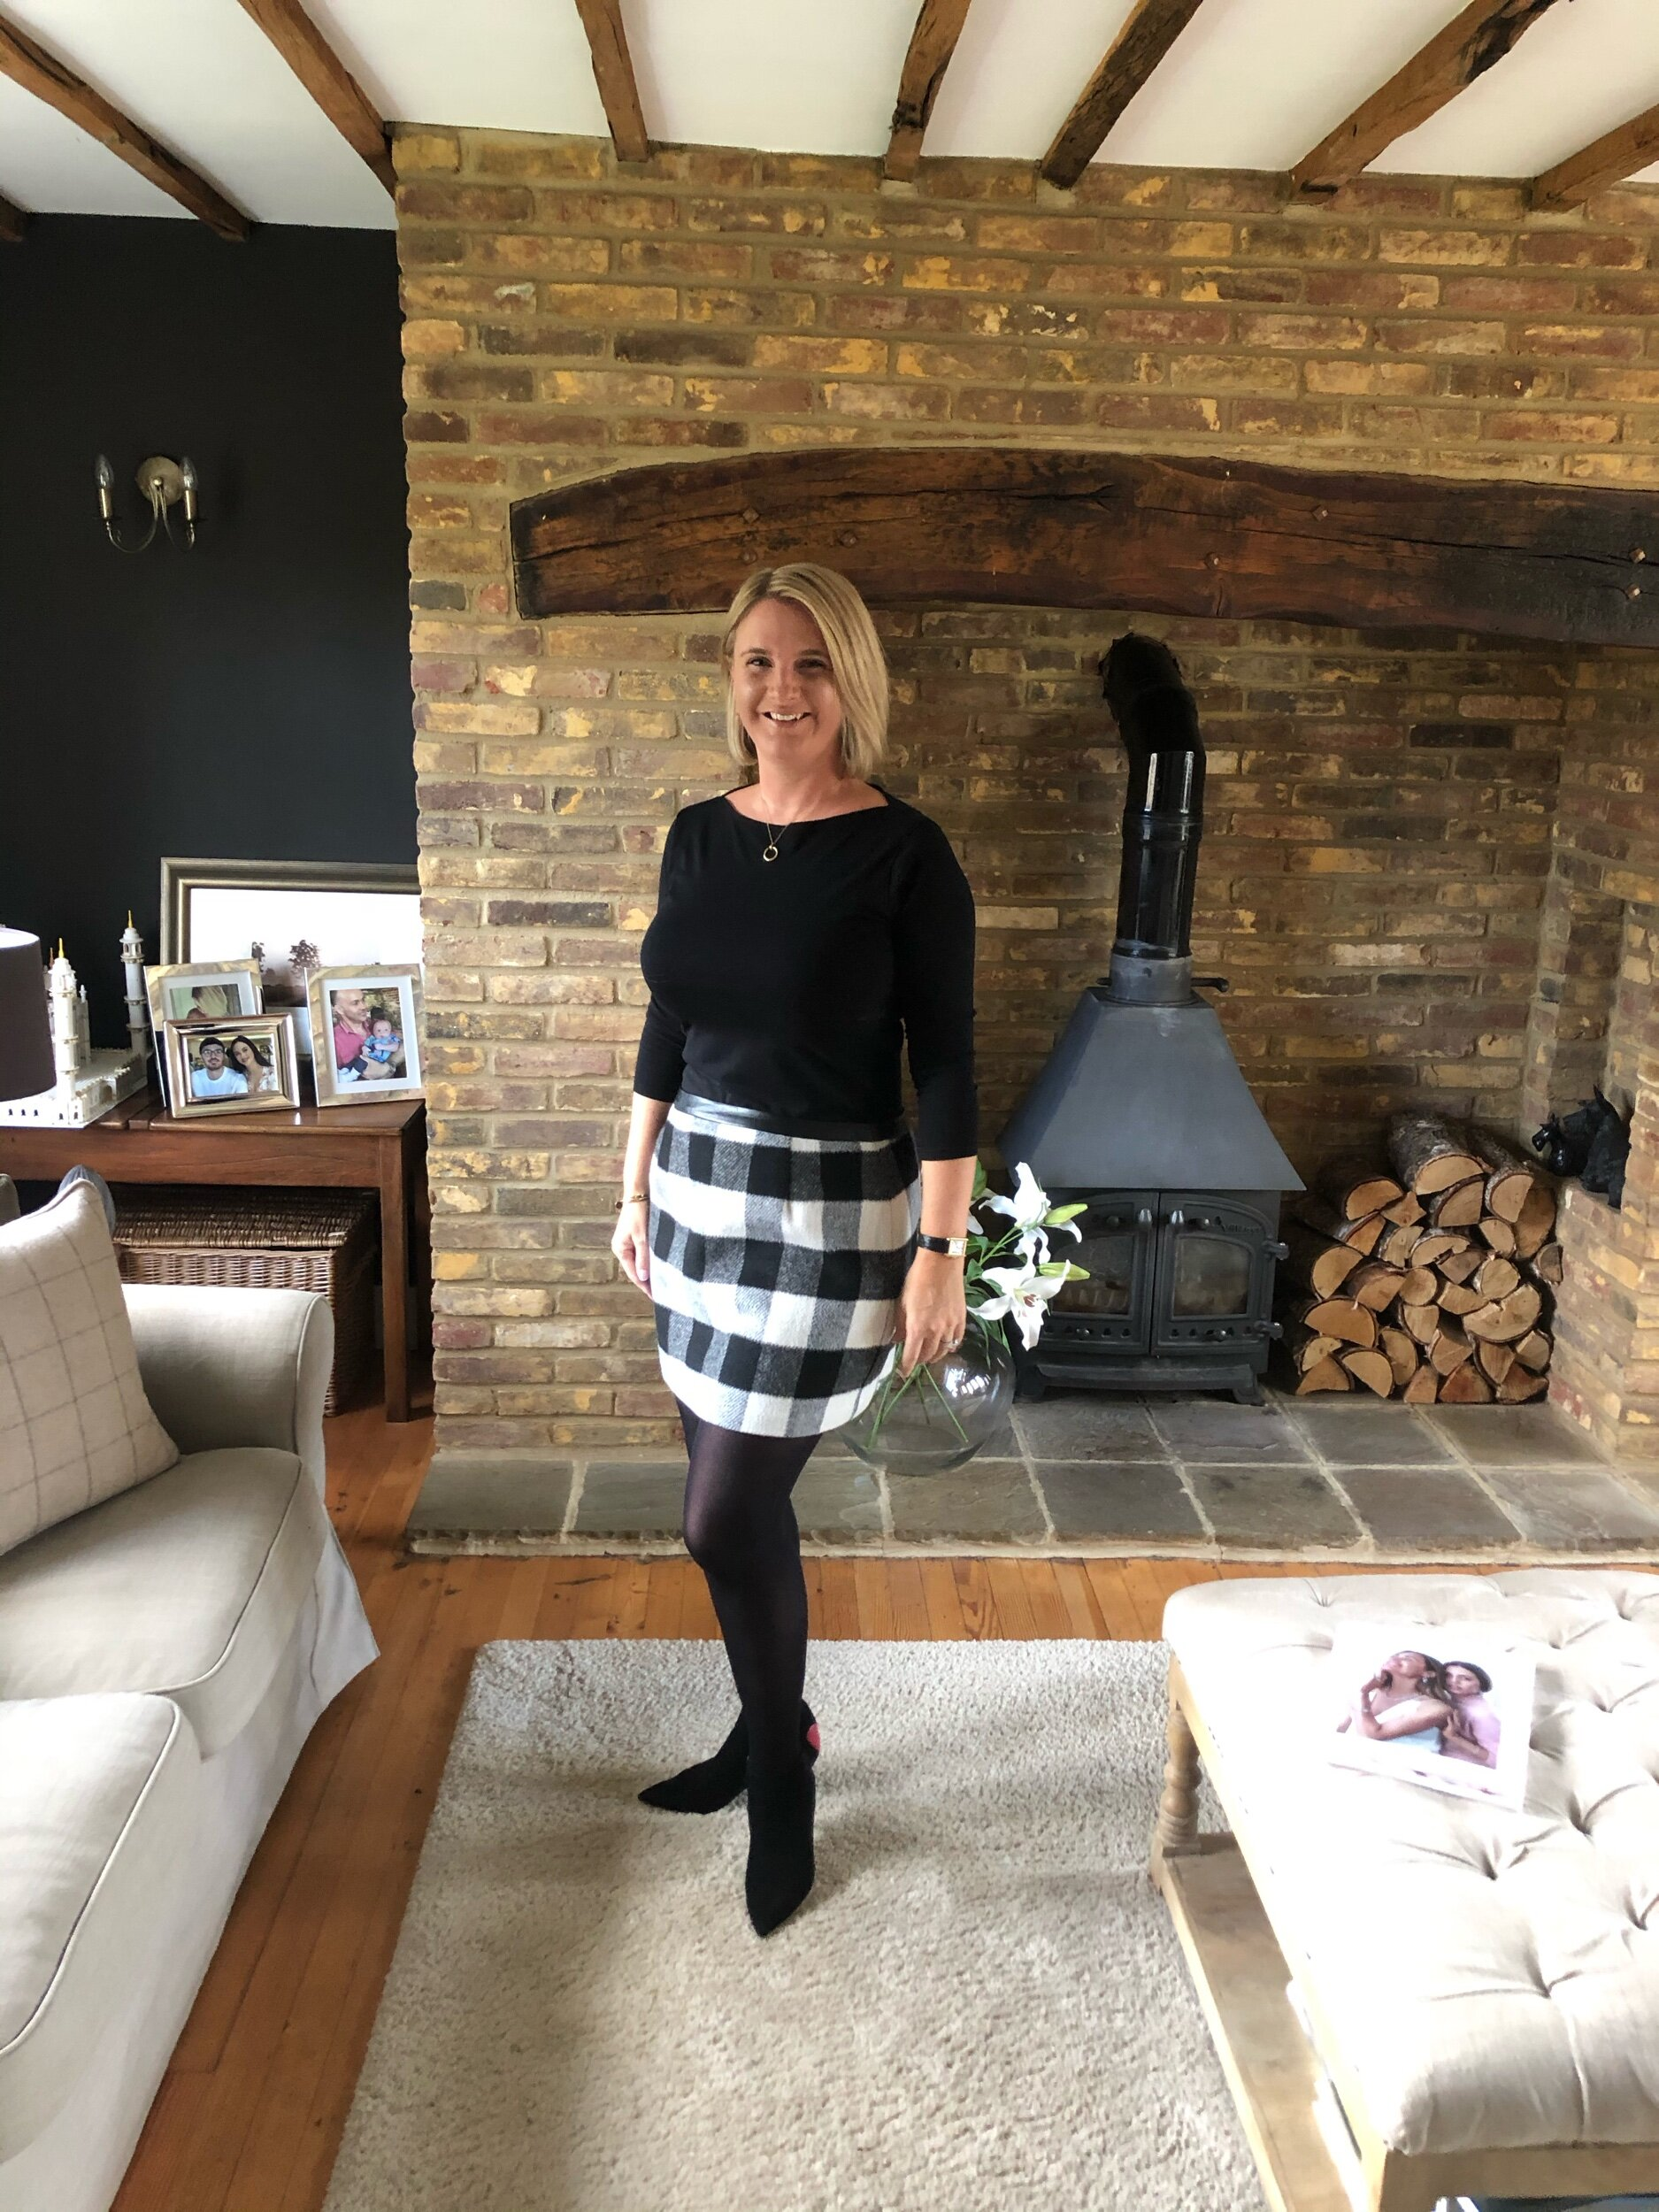 Top from M&S, Skirt from Tommy Hilfiger, Tights from Tesco, Boots from Christian Dior